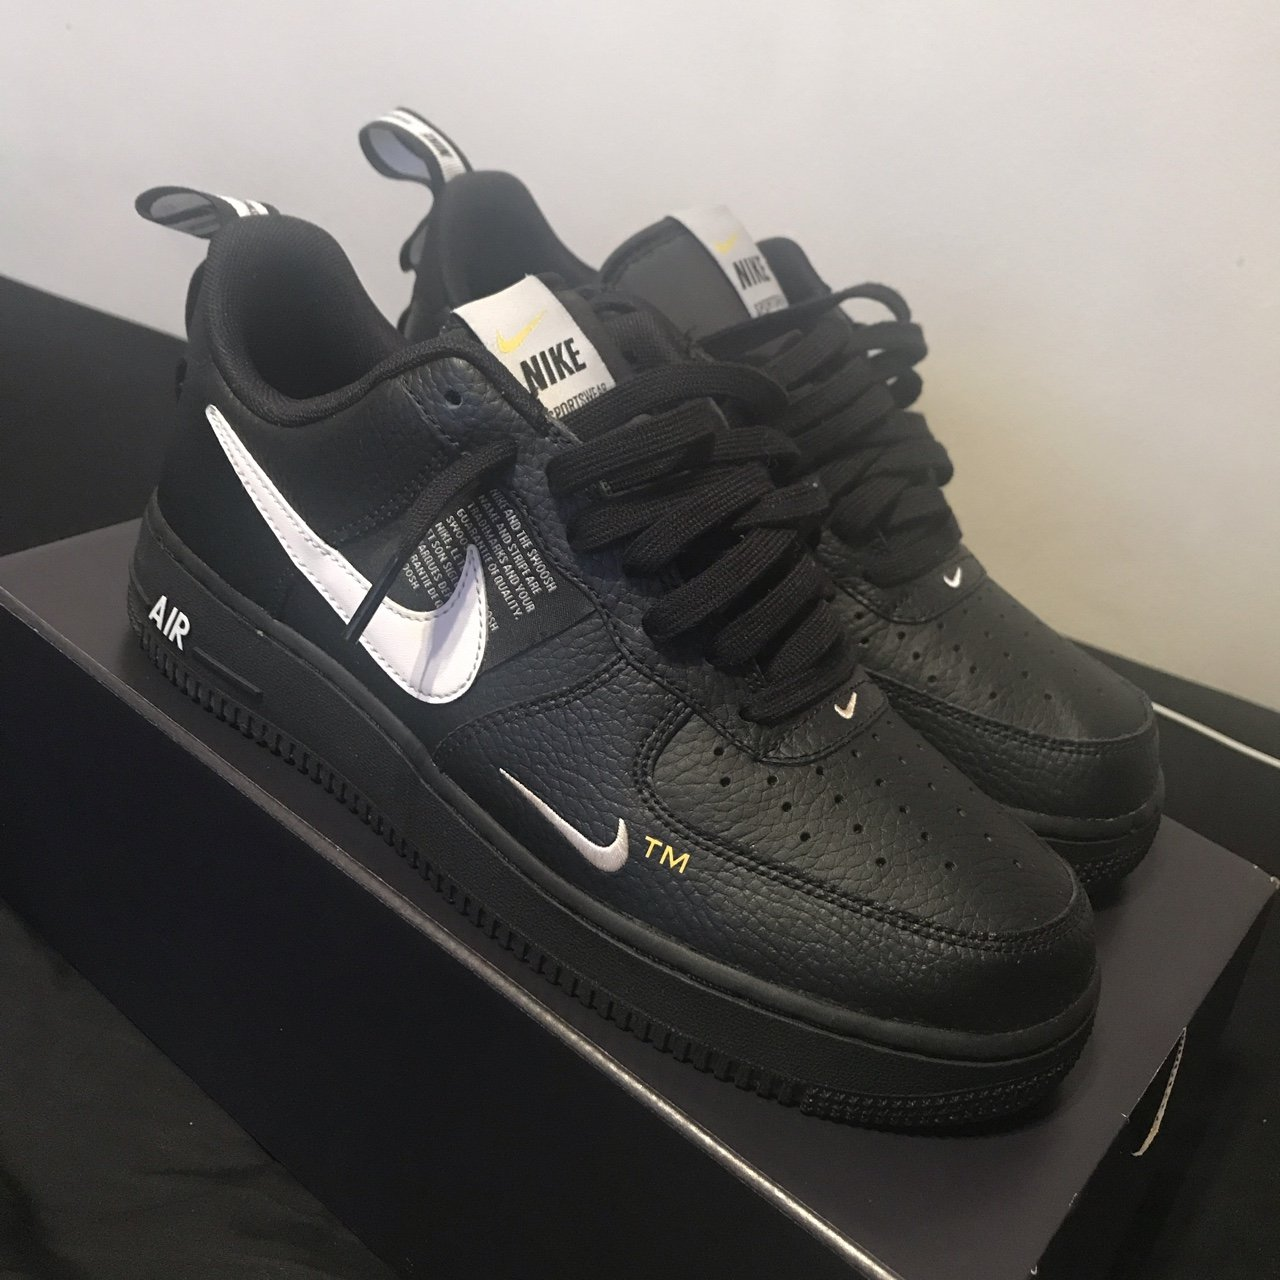 MENS Nike Air Force 1'07 LV 8 Utility Size 7 Depop